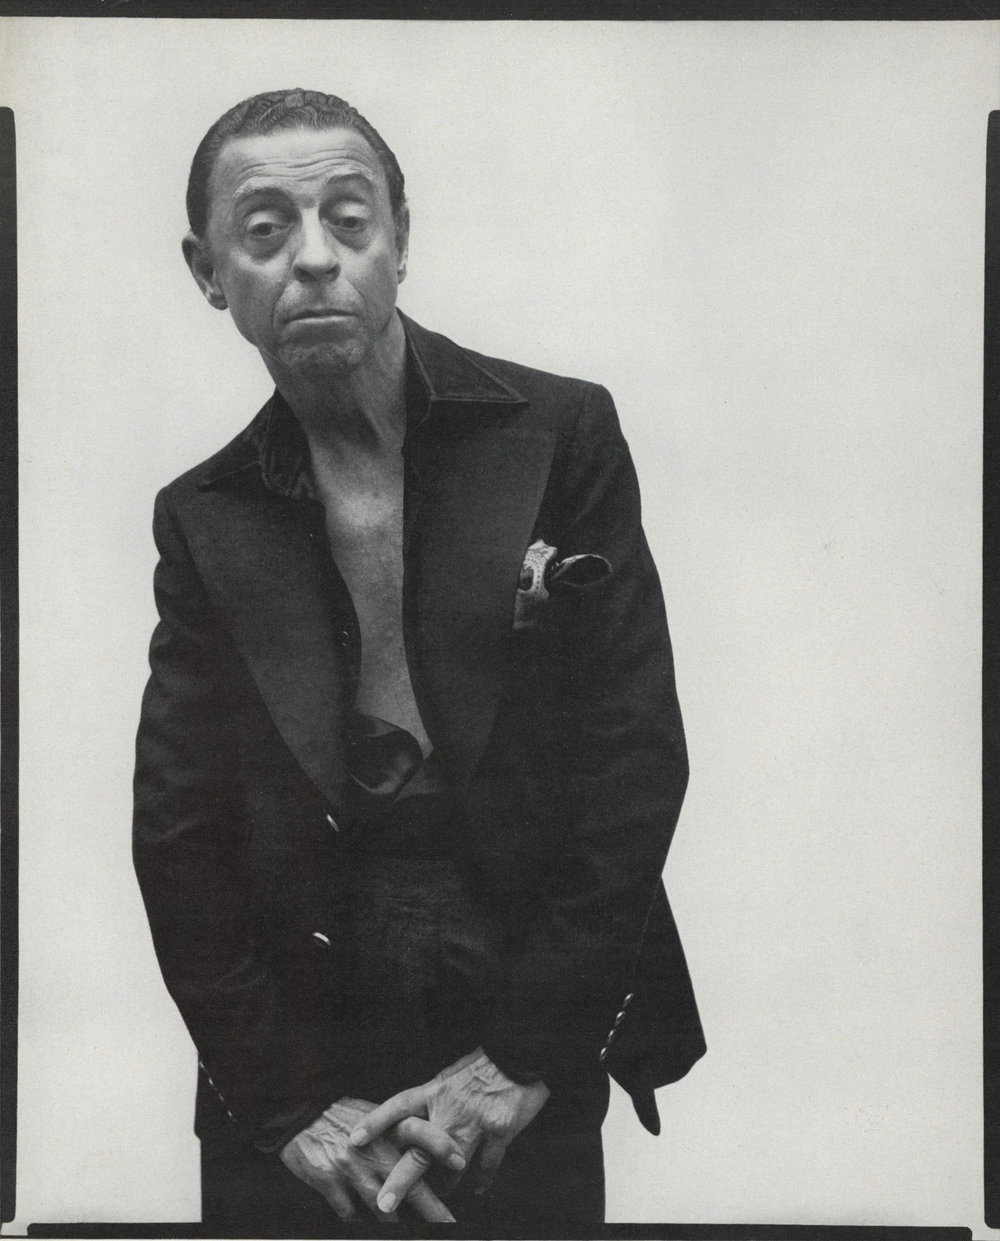 James Galanos photographed by Richard Avedon in New York City, August 10, 1975. Published in Vogue, October 1976.